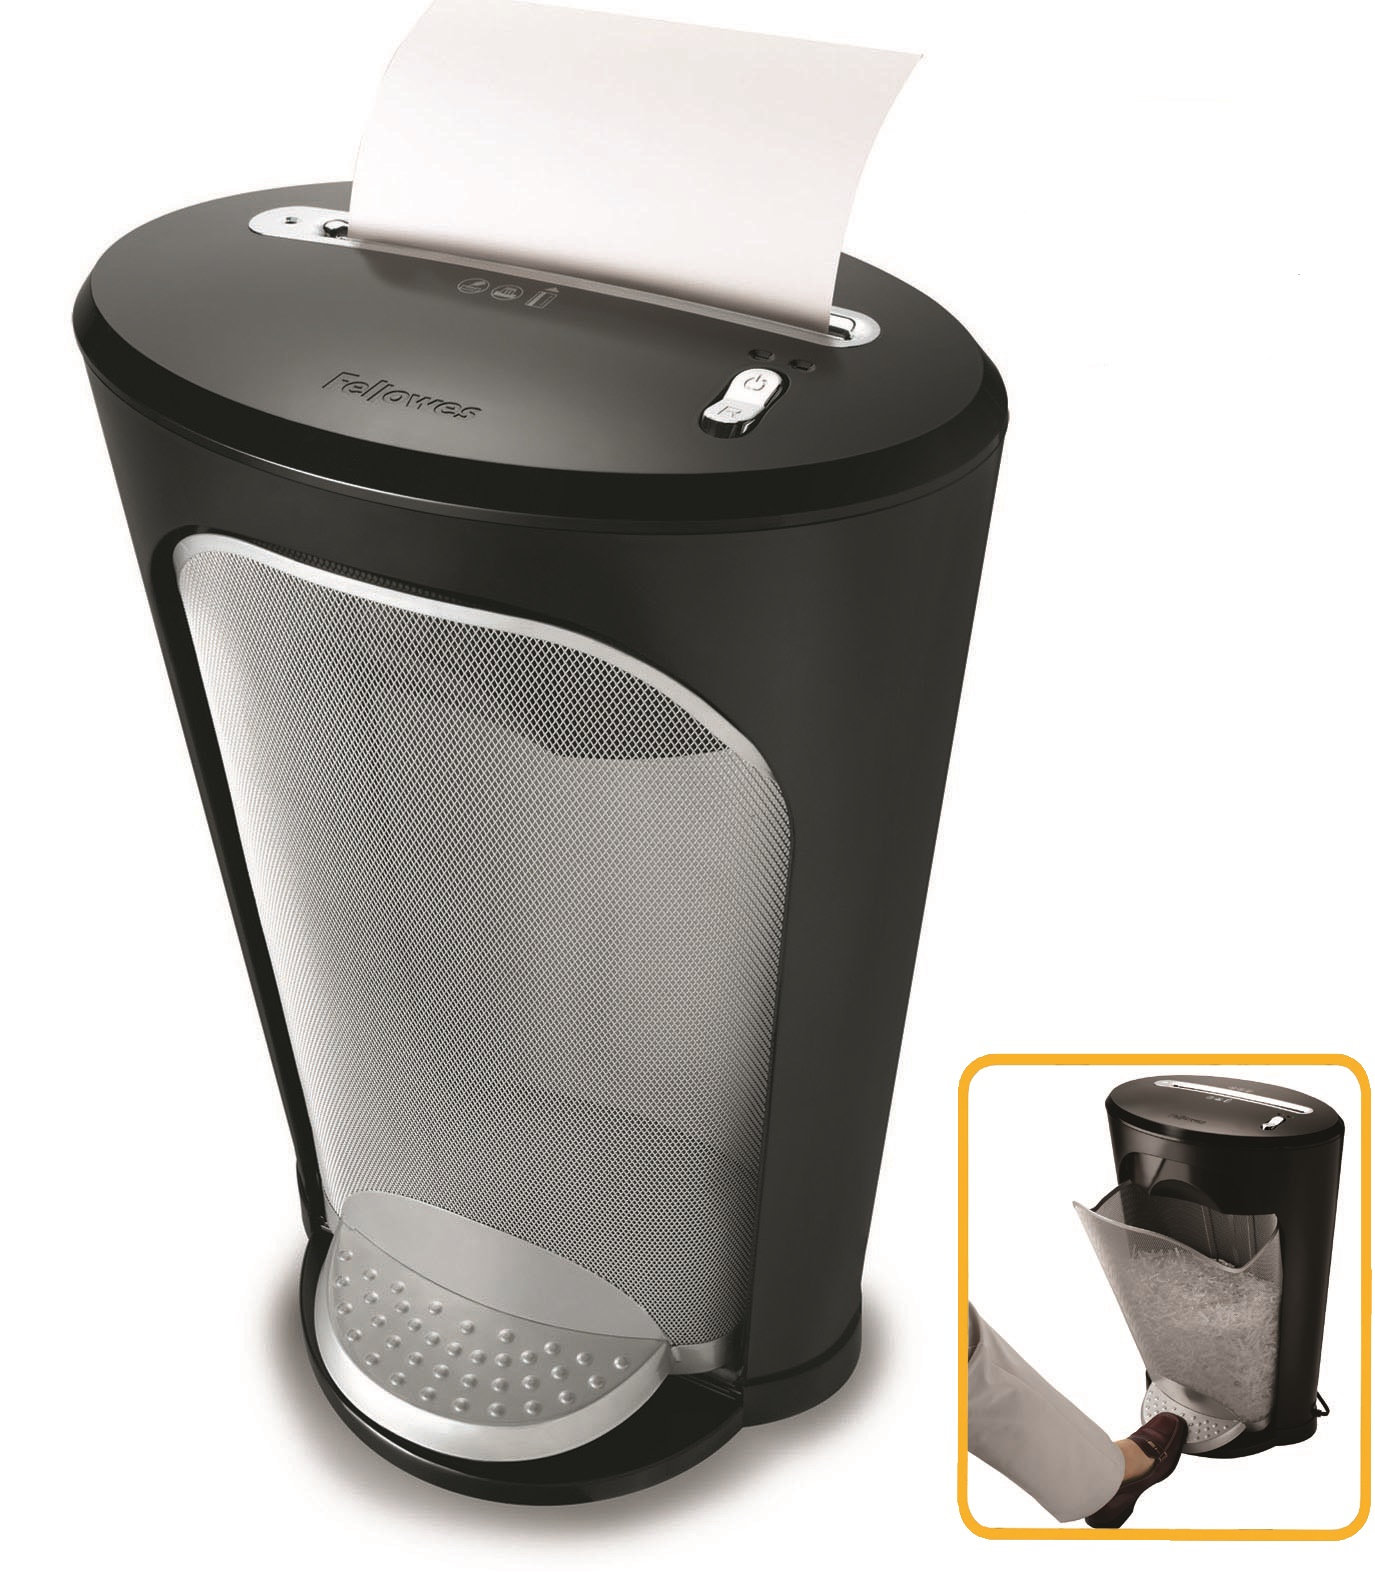 Destruidora de Papel Fellowes DS-1, 11Fls, 18L